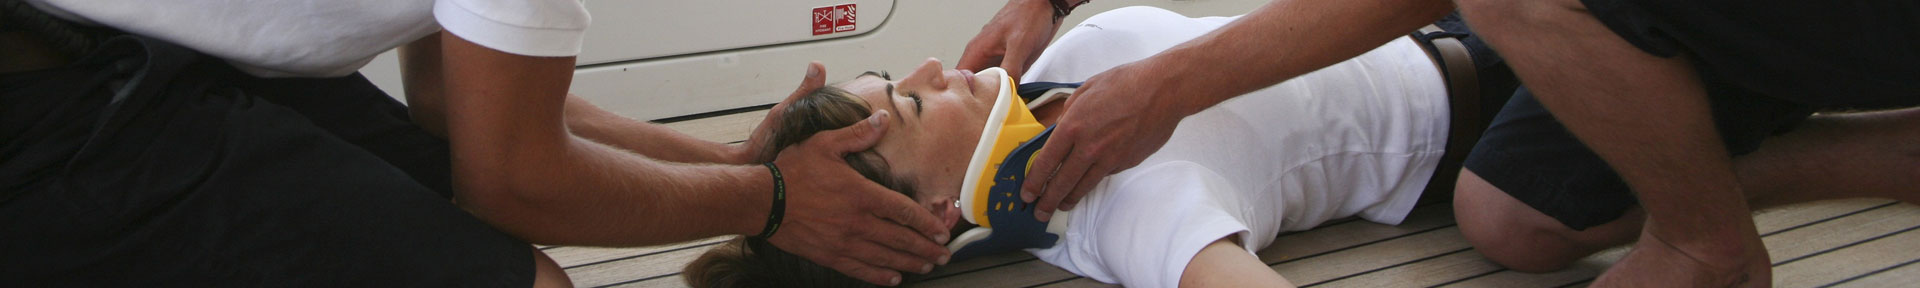 A casualty in a neck brace receiving medical attention